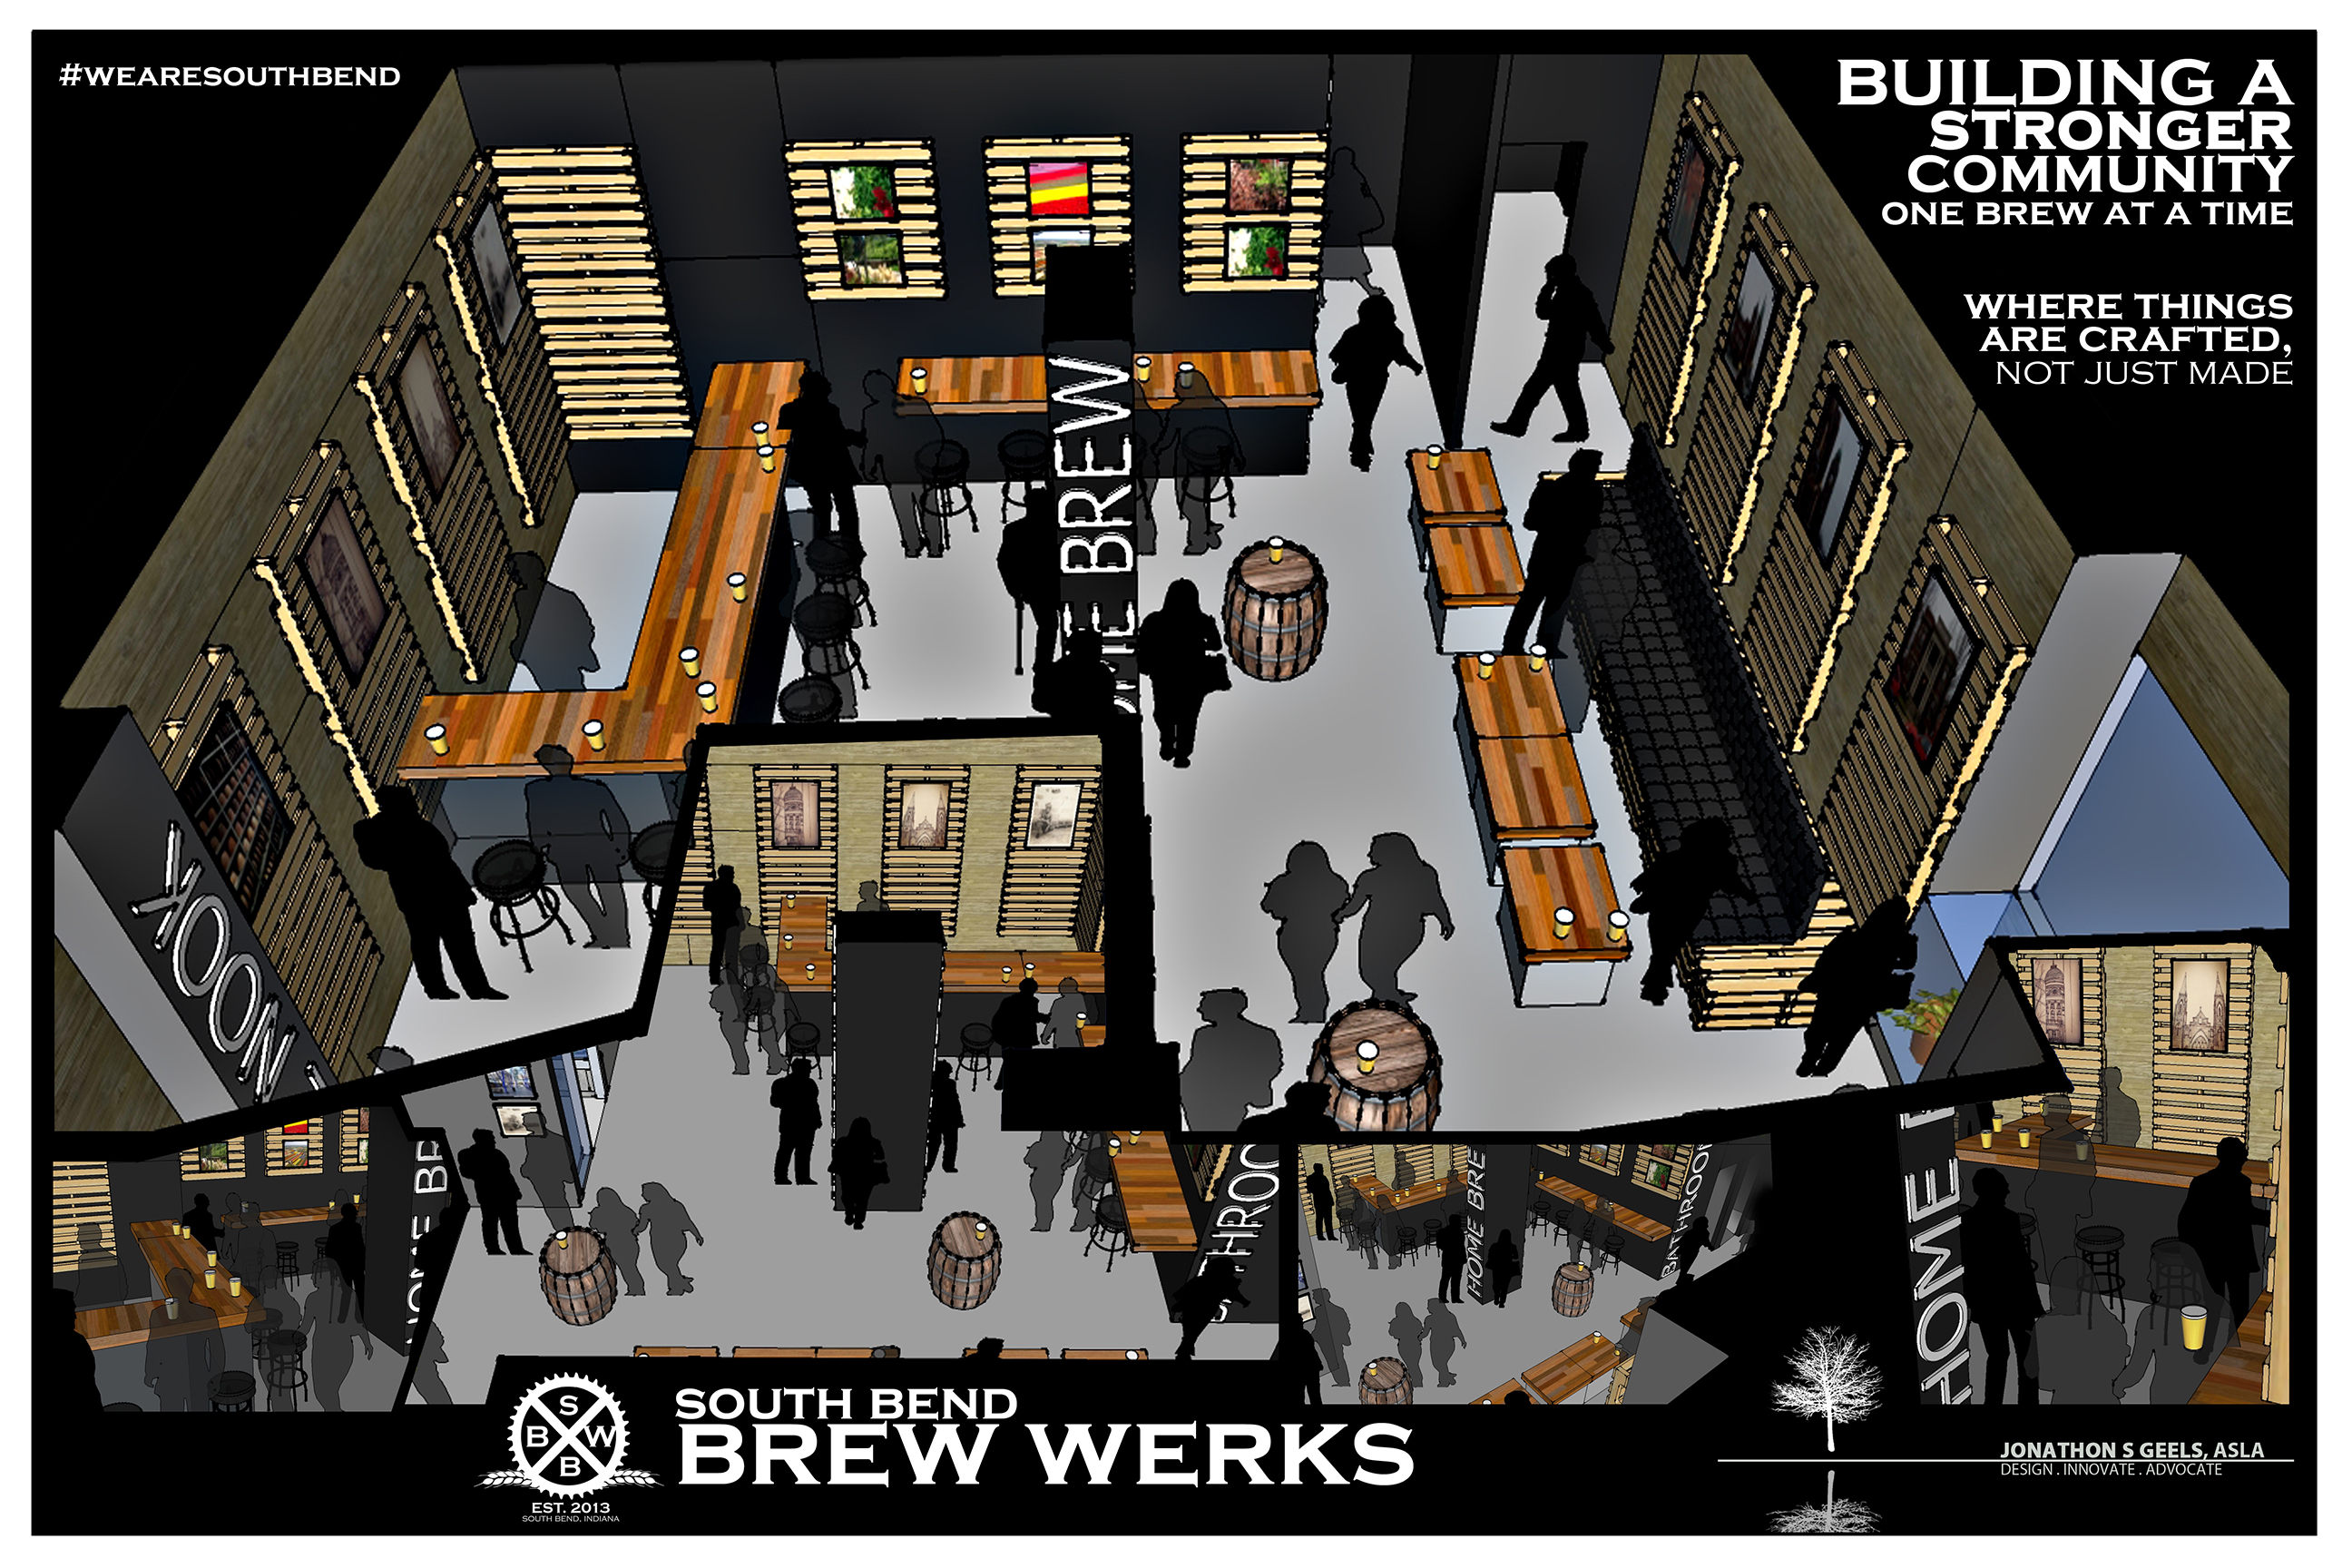 Brew Pub Slated To Open This Spring In Downtown South Bend The Official Student Newspaper Of Indiana University South Bend